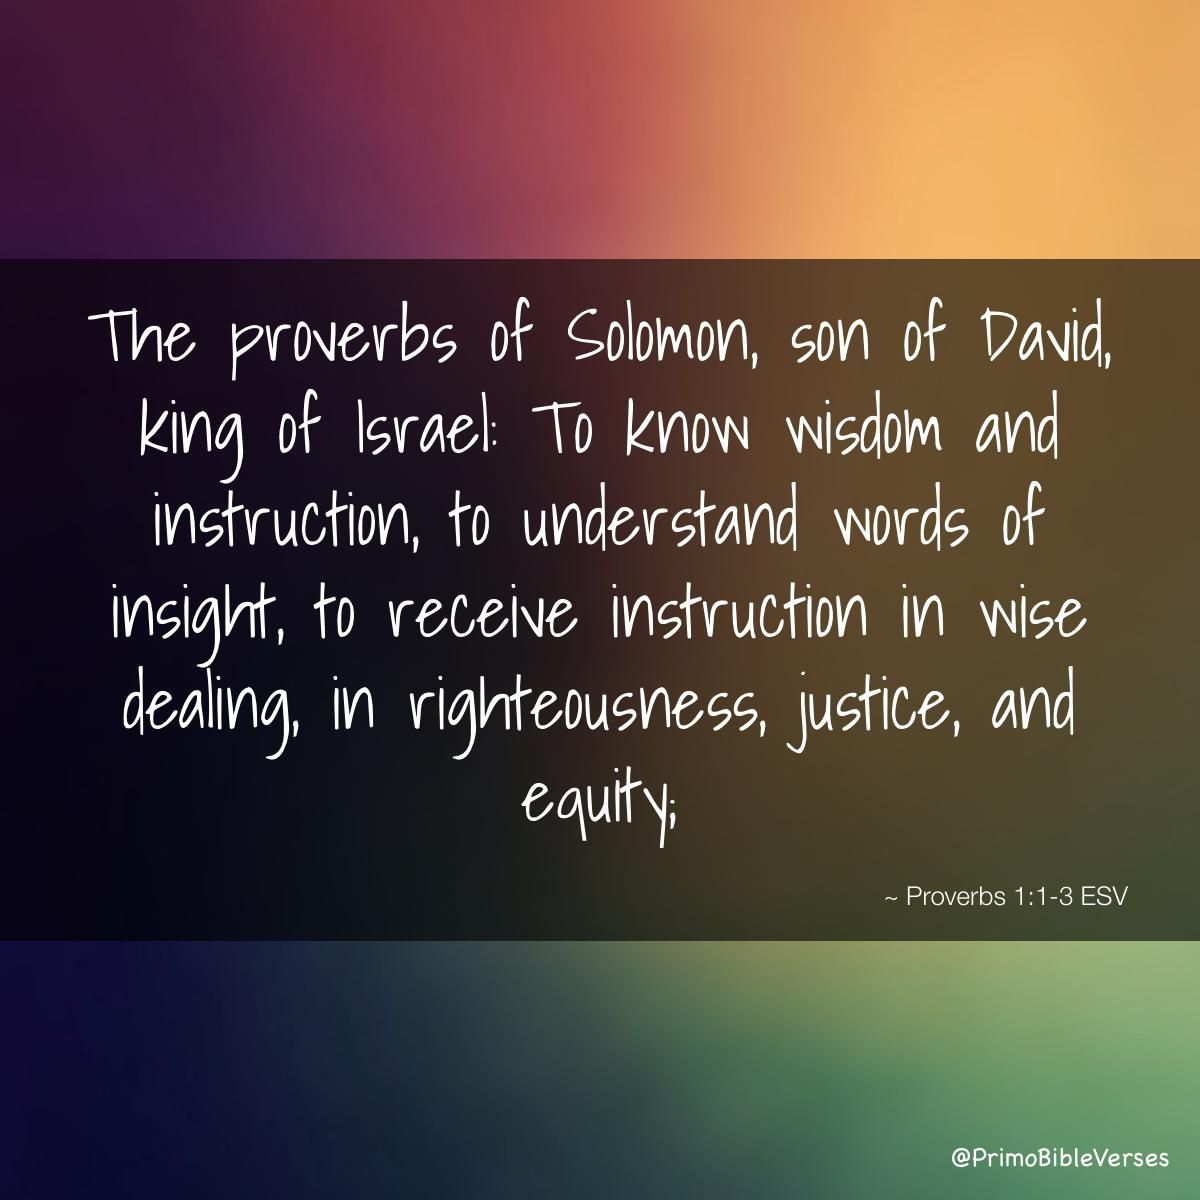 proverbs david and solomon 1 the proverbs of solomon the son of david, king of israel ב לָדַעַת חָכְמָה  וּמוּסָר לְהָבִין, אִמְרֵי בִינָה 2 to know wisdom and instruction to comprehend  the.